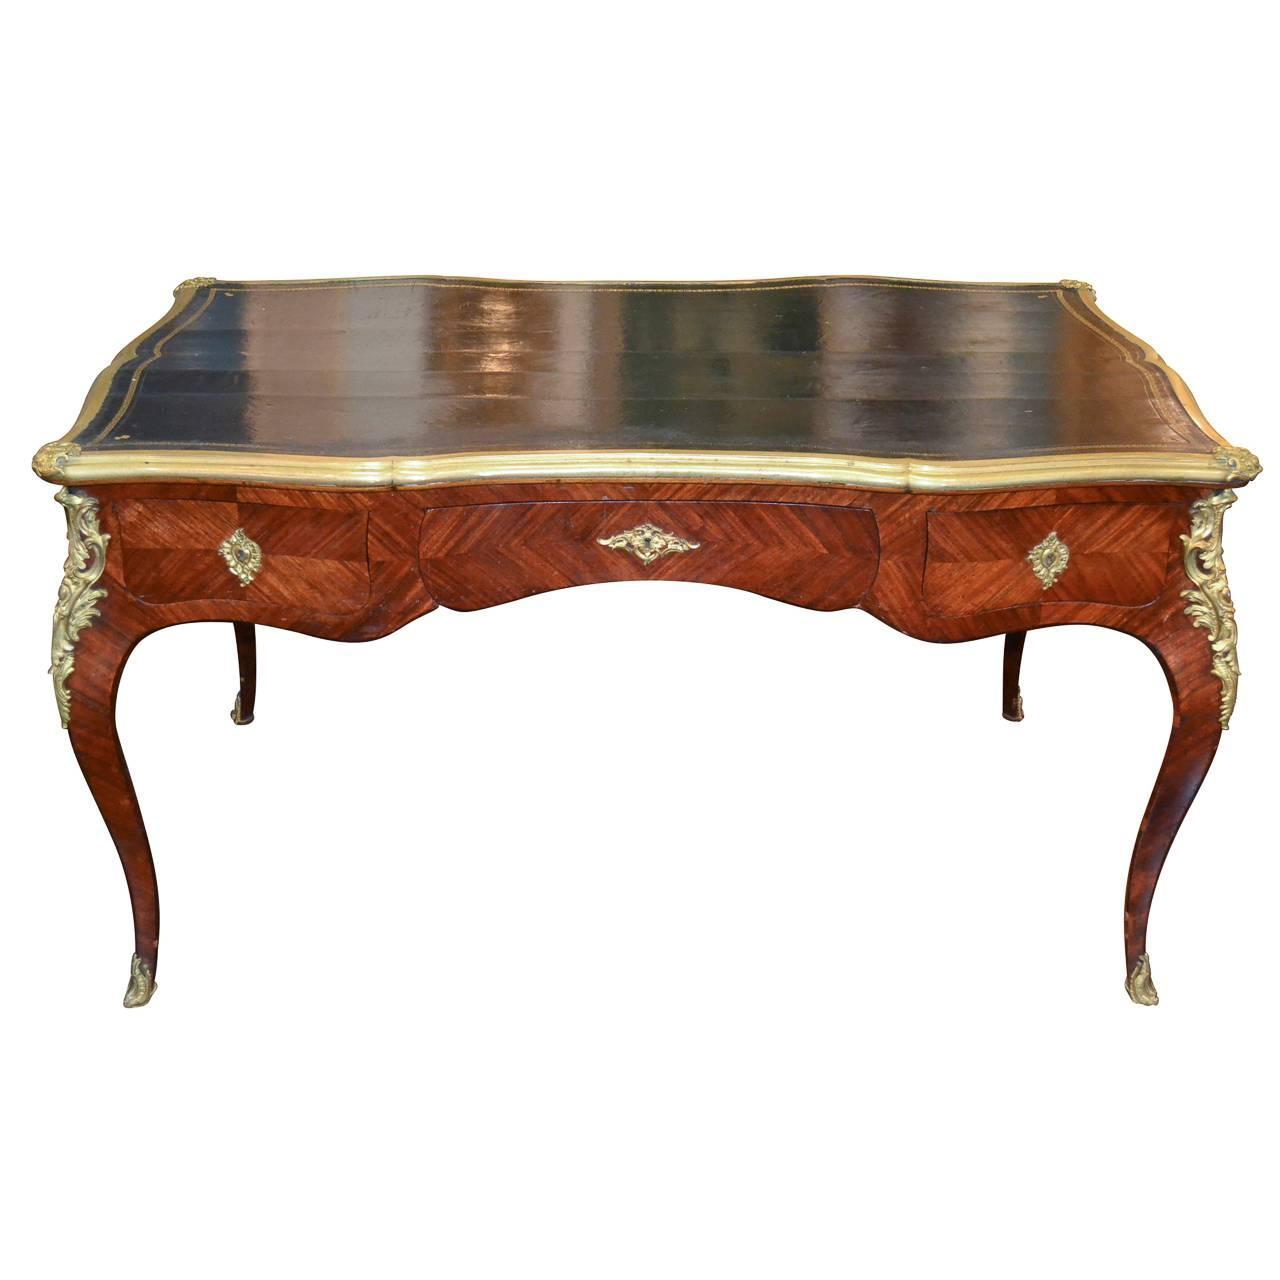 french louis xv bureau plat for sale at 1stdibs. Black Bedroom Furniture Sets. Home Design Ideas